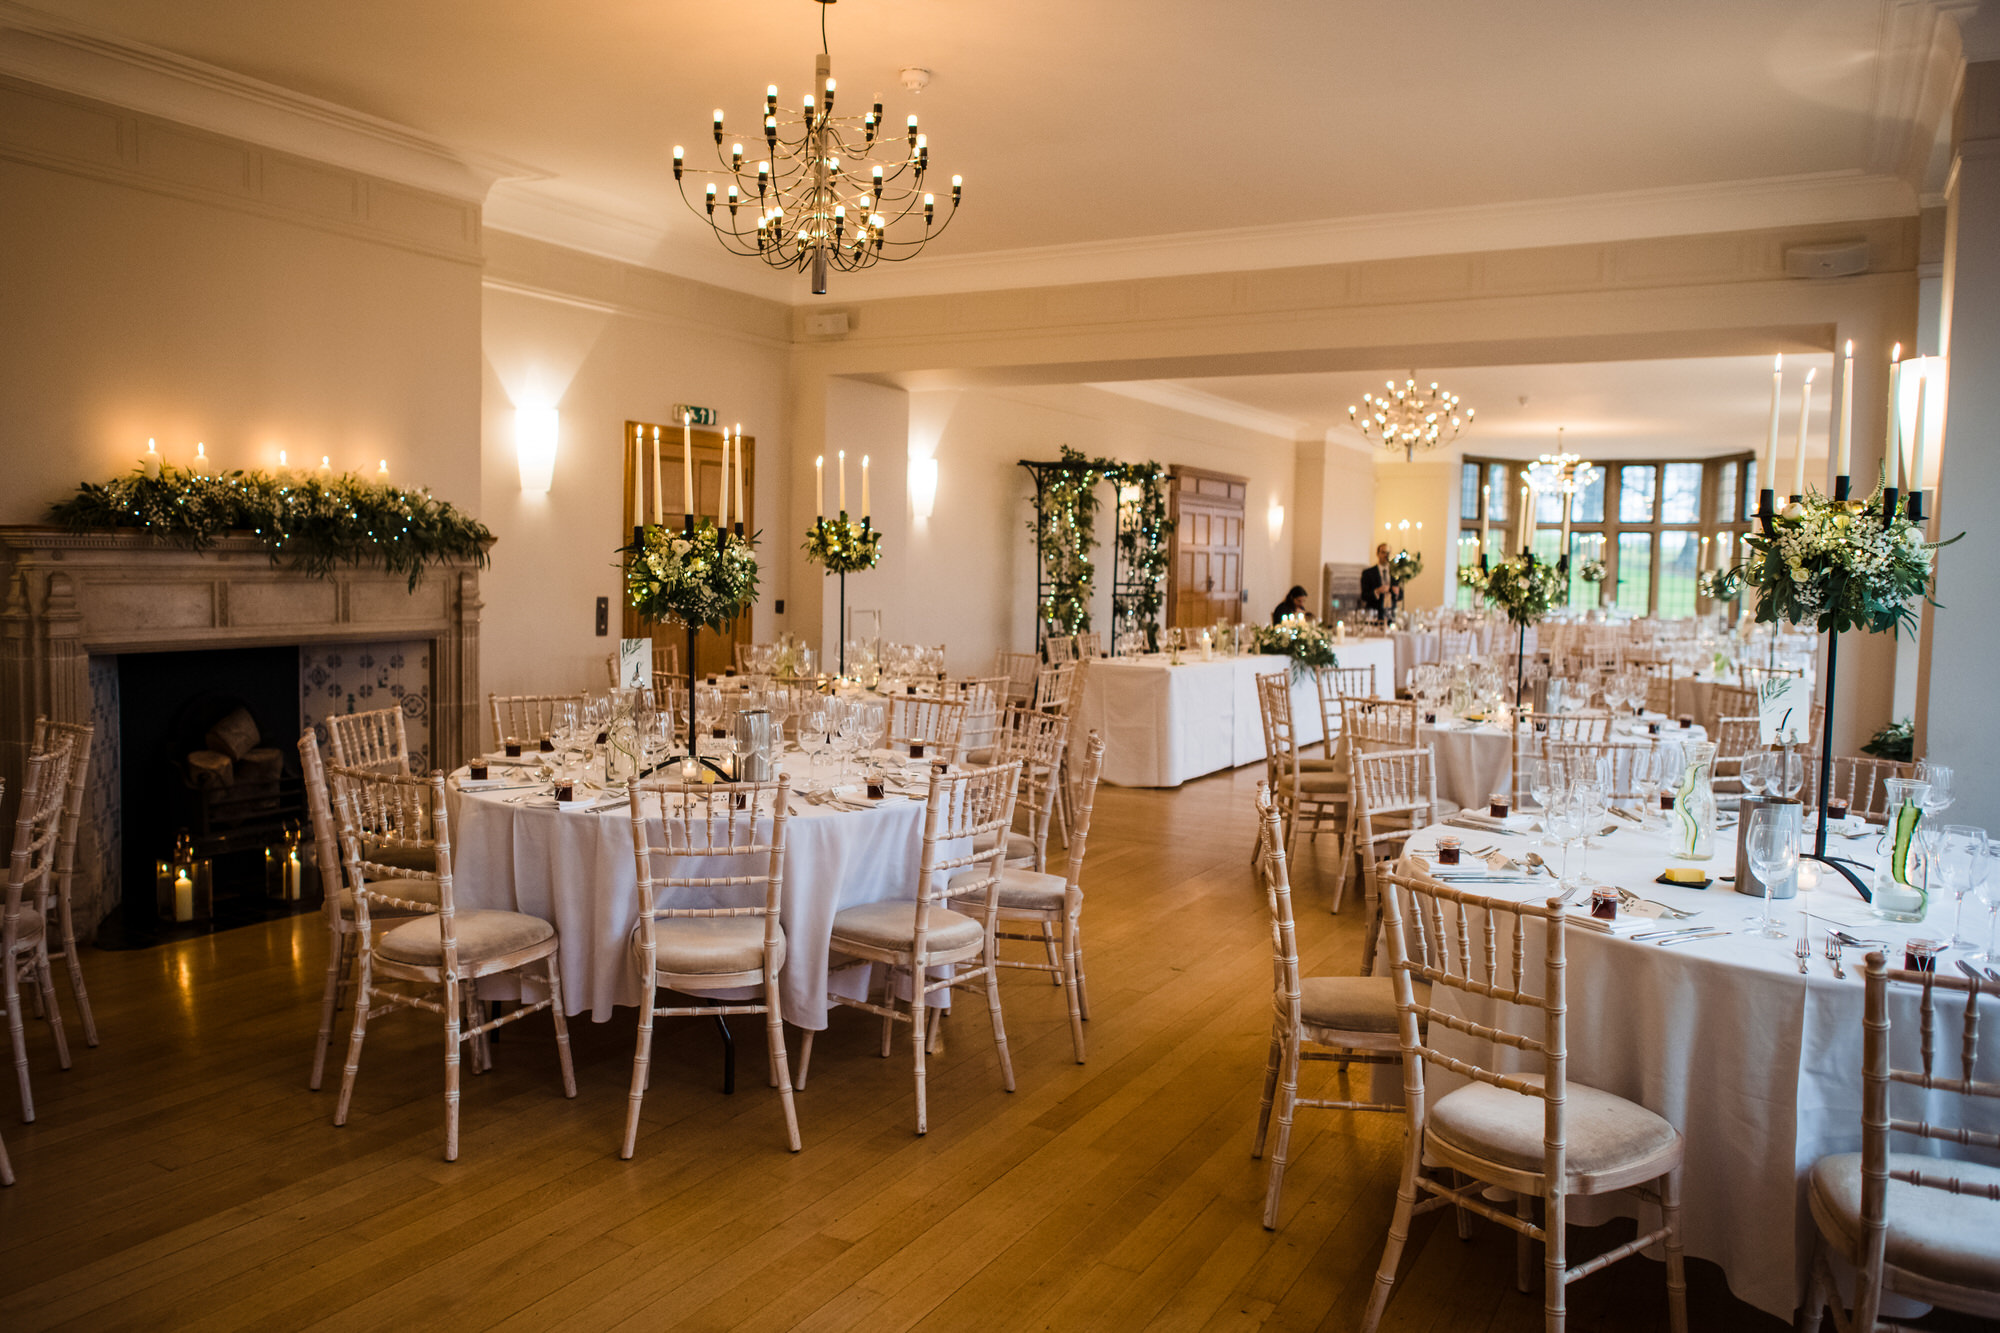 Coombe lodge wedding breakfast setup